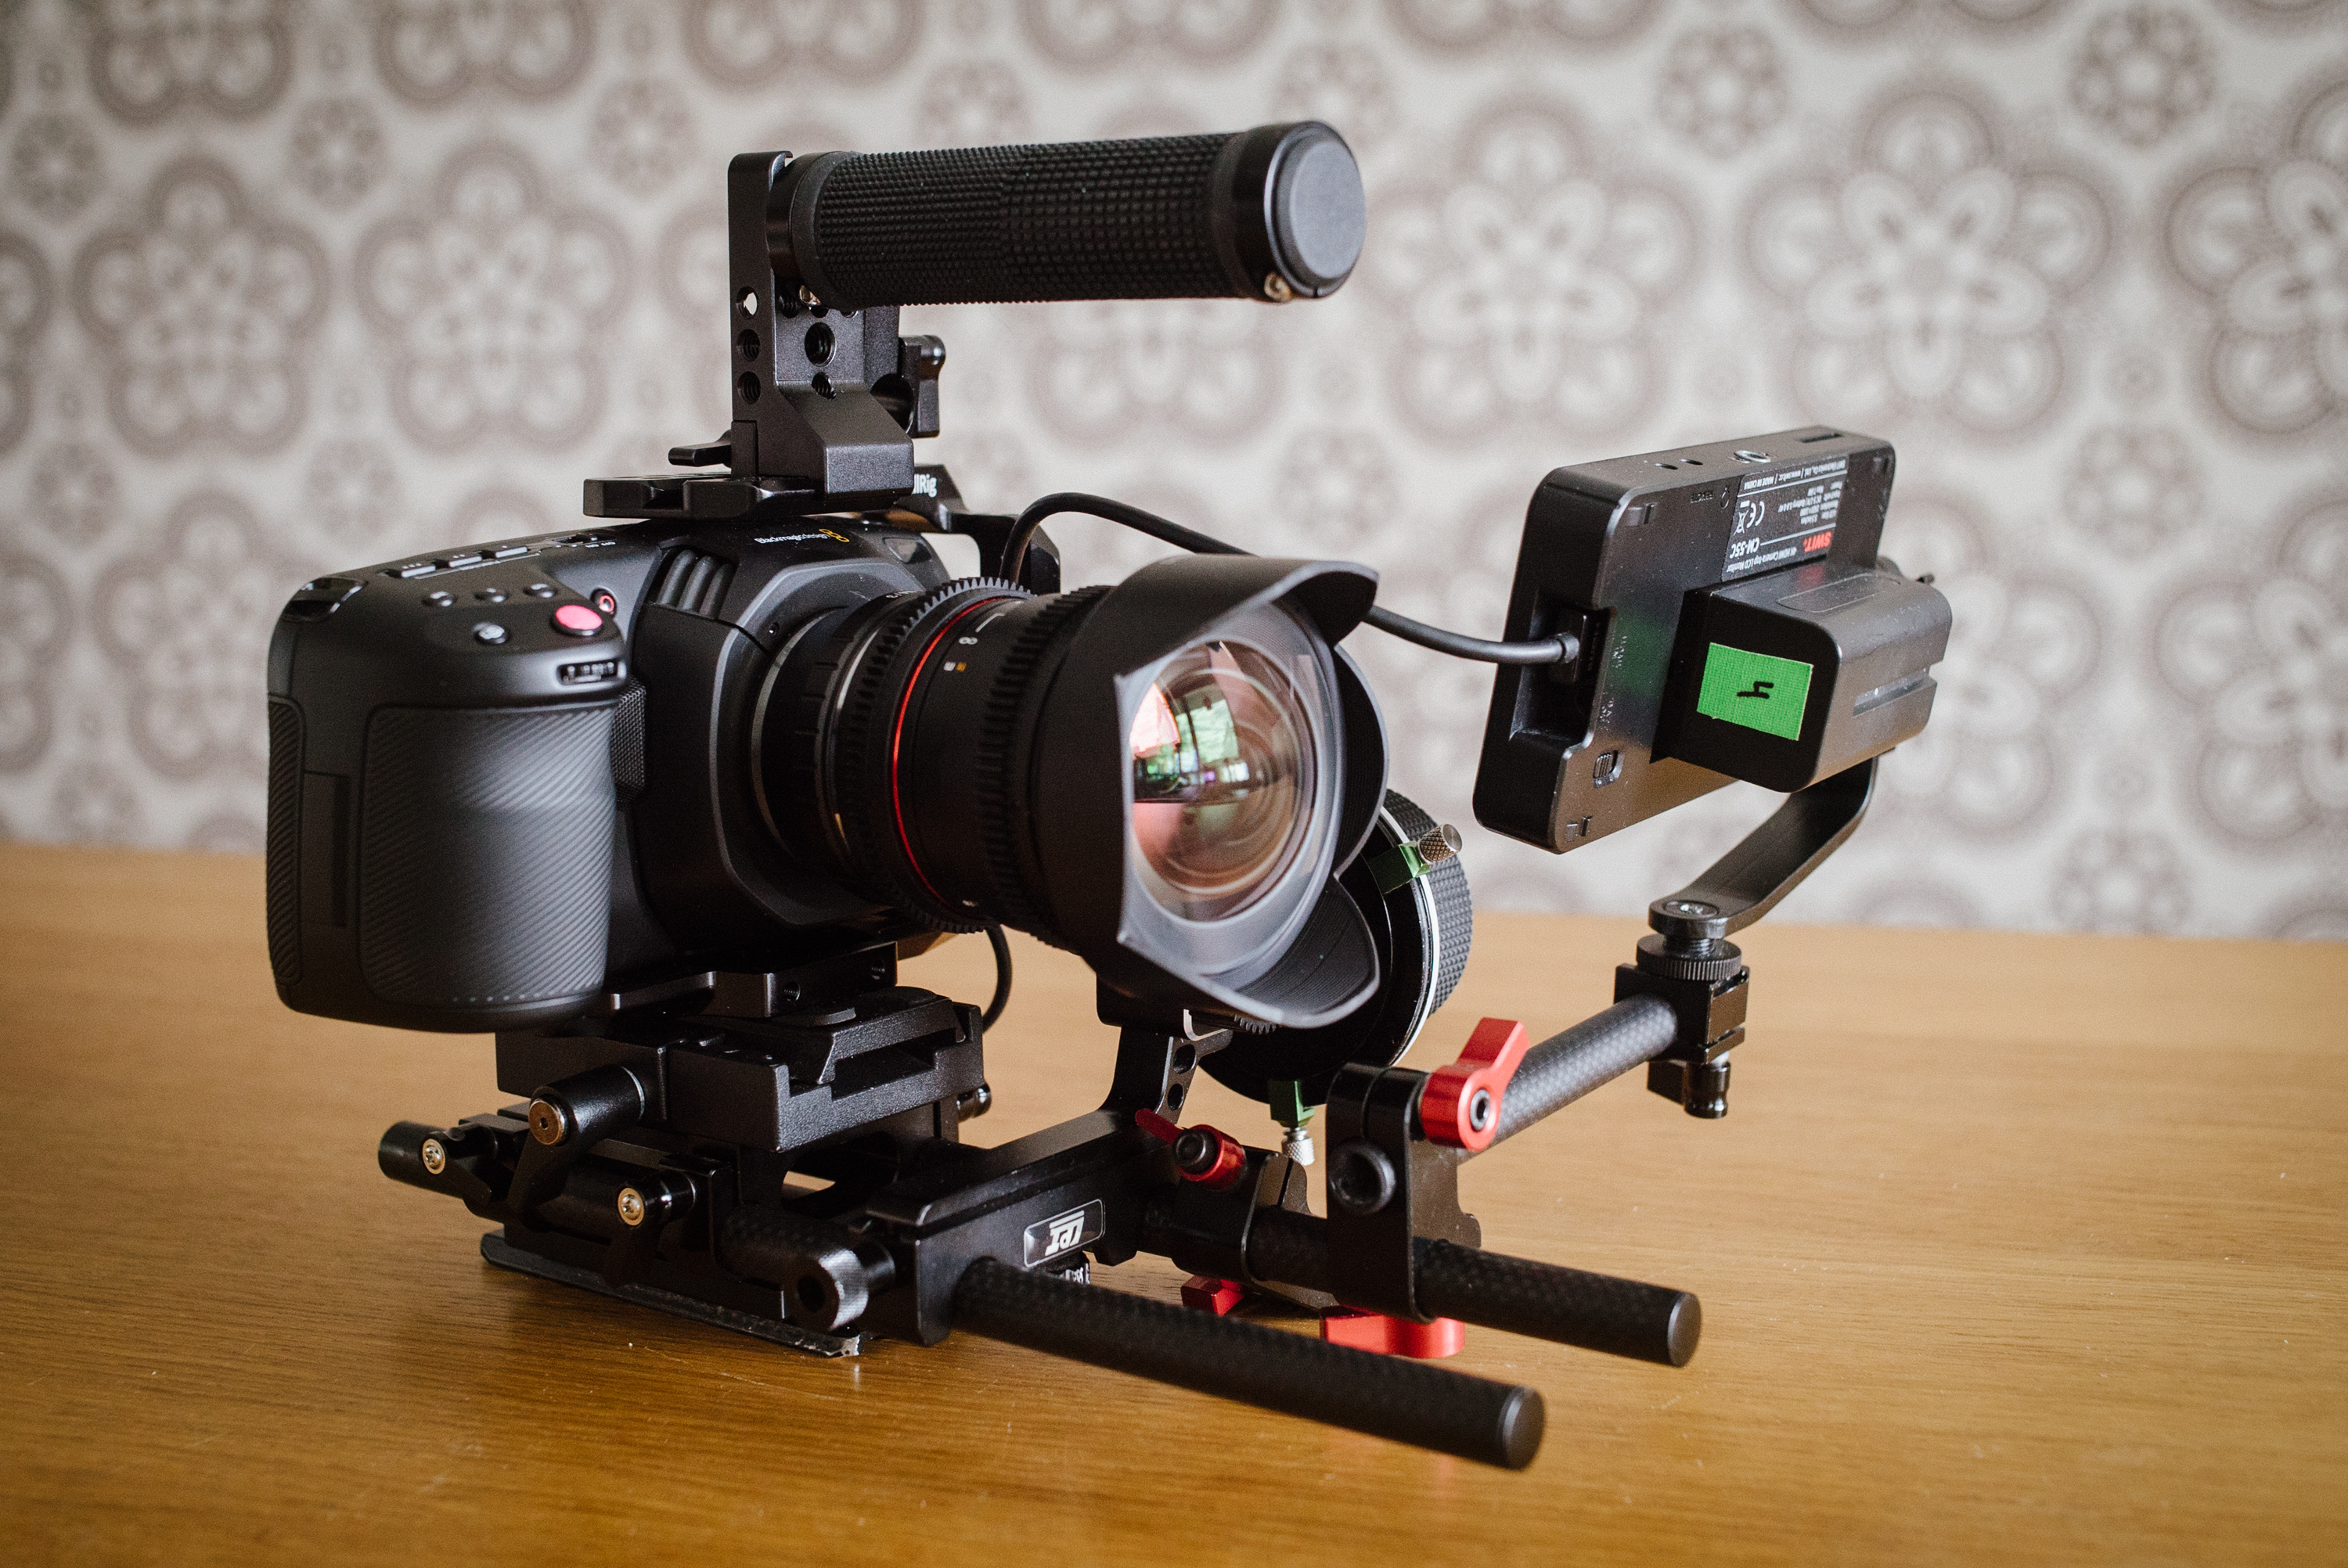 Blackmagic Pocket Cinema Camera 4K review